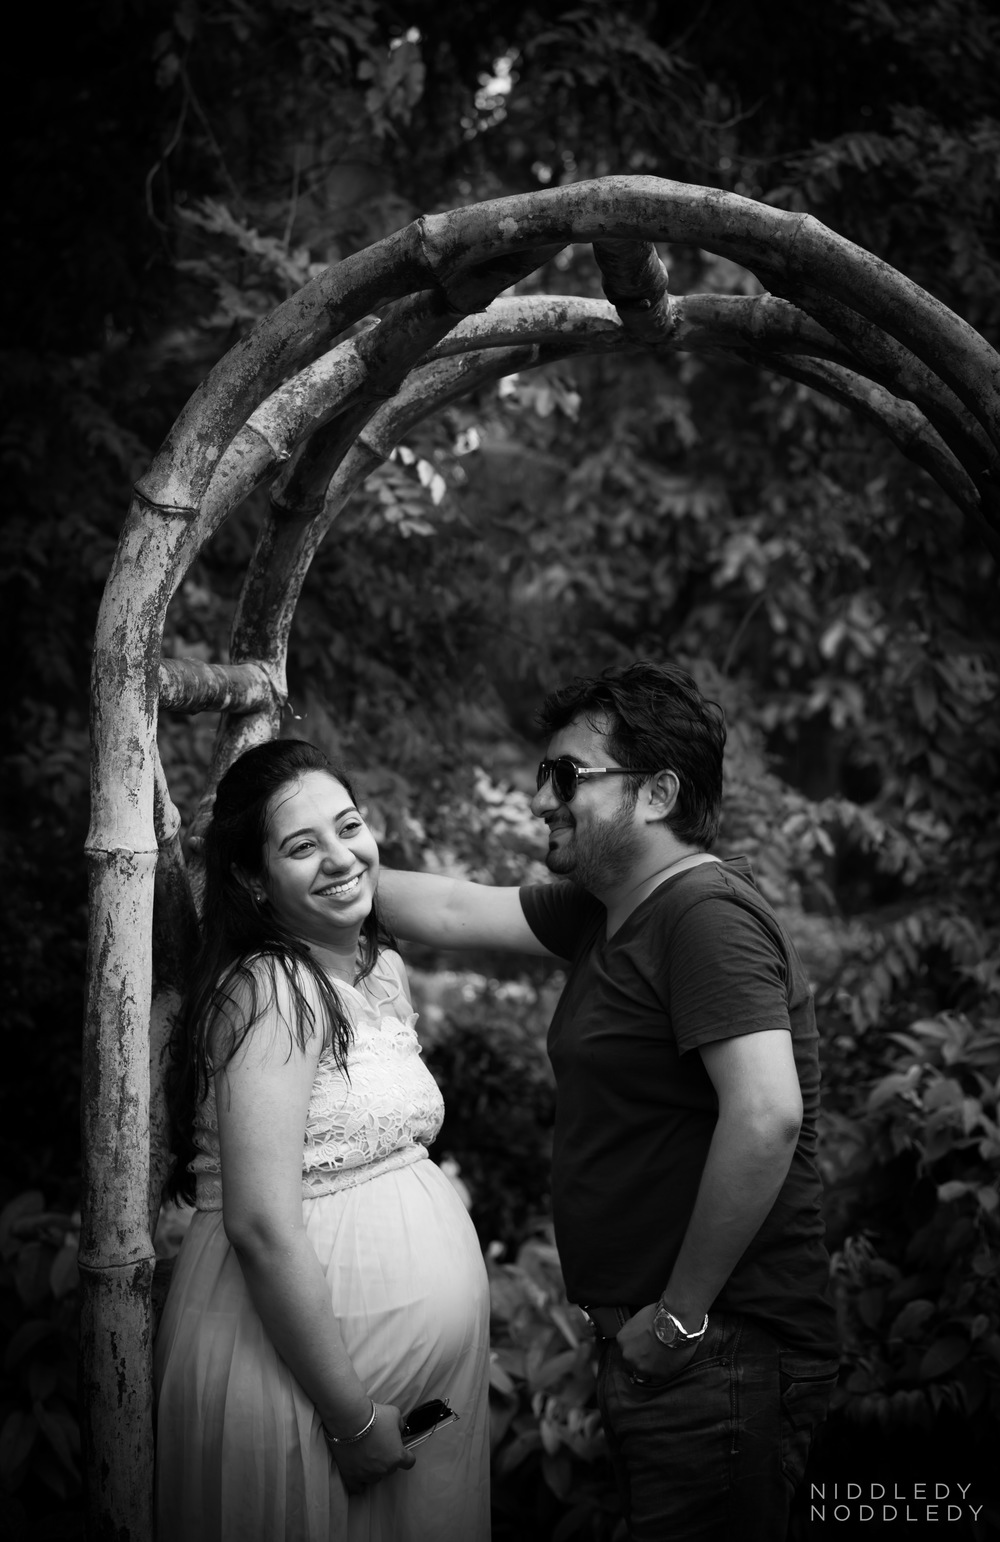 Ajmani's Maternity Photoshoot ❤ NiddledyNoddledy.com ~ Bumps to Babies Photography, Calcutta - 11.jpg